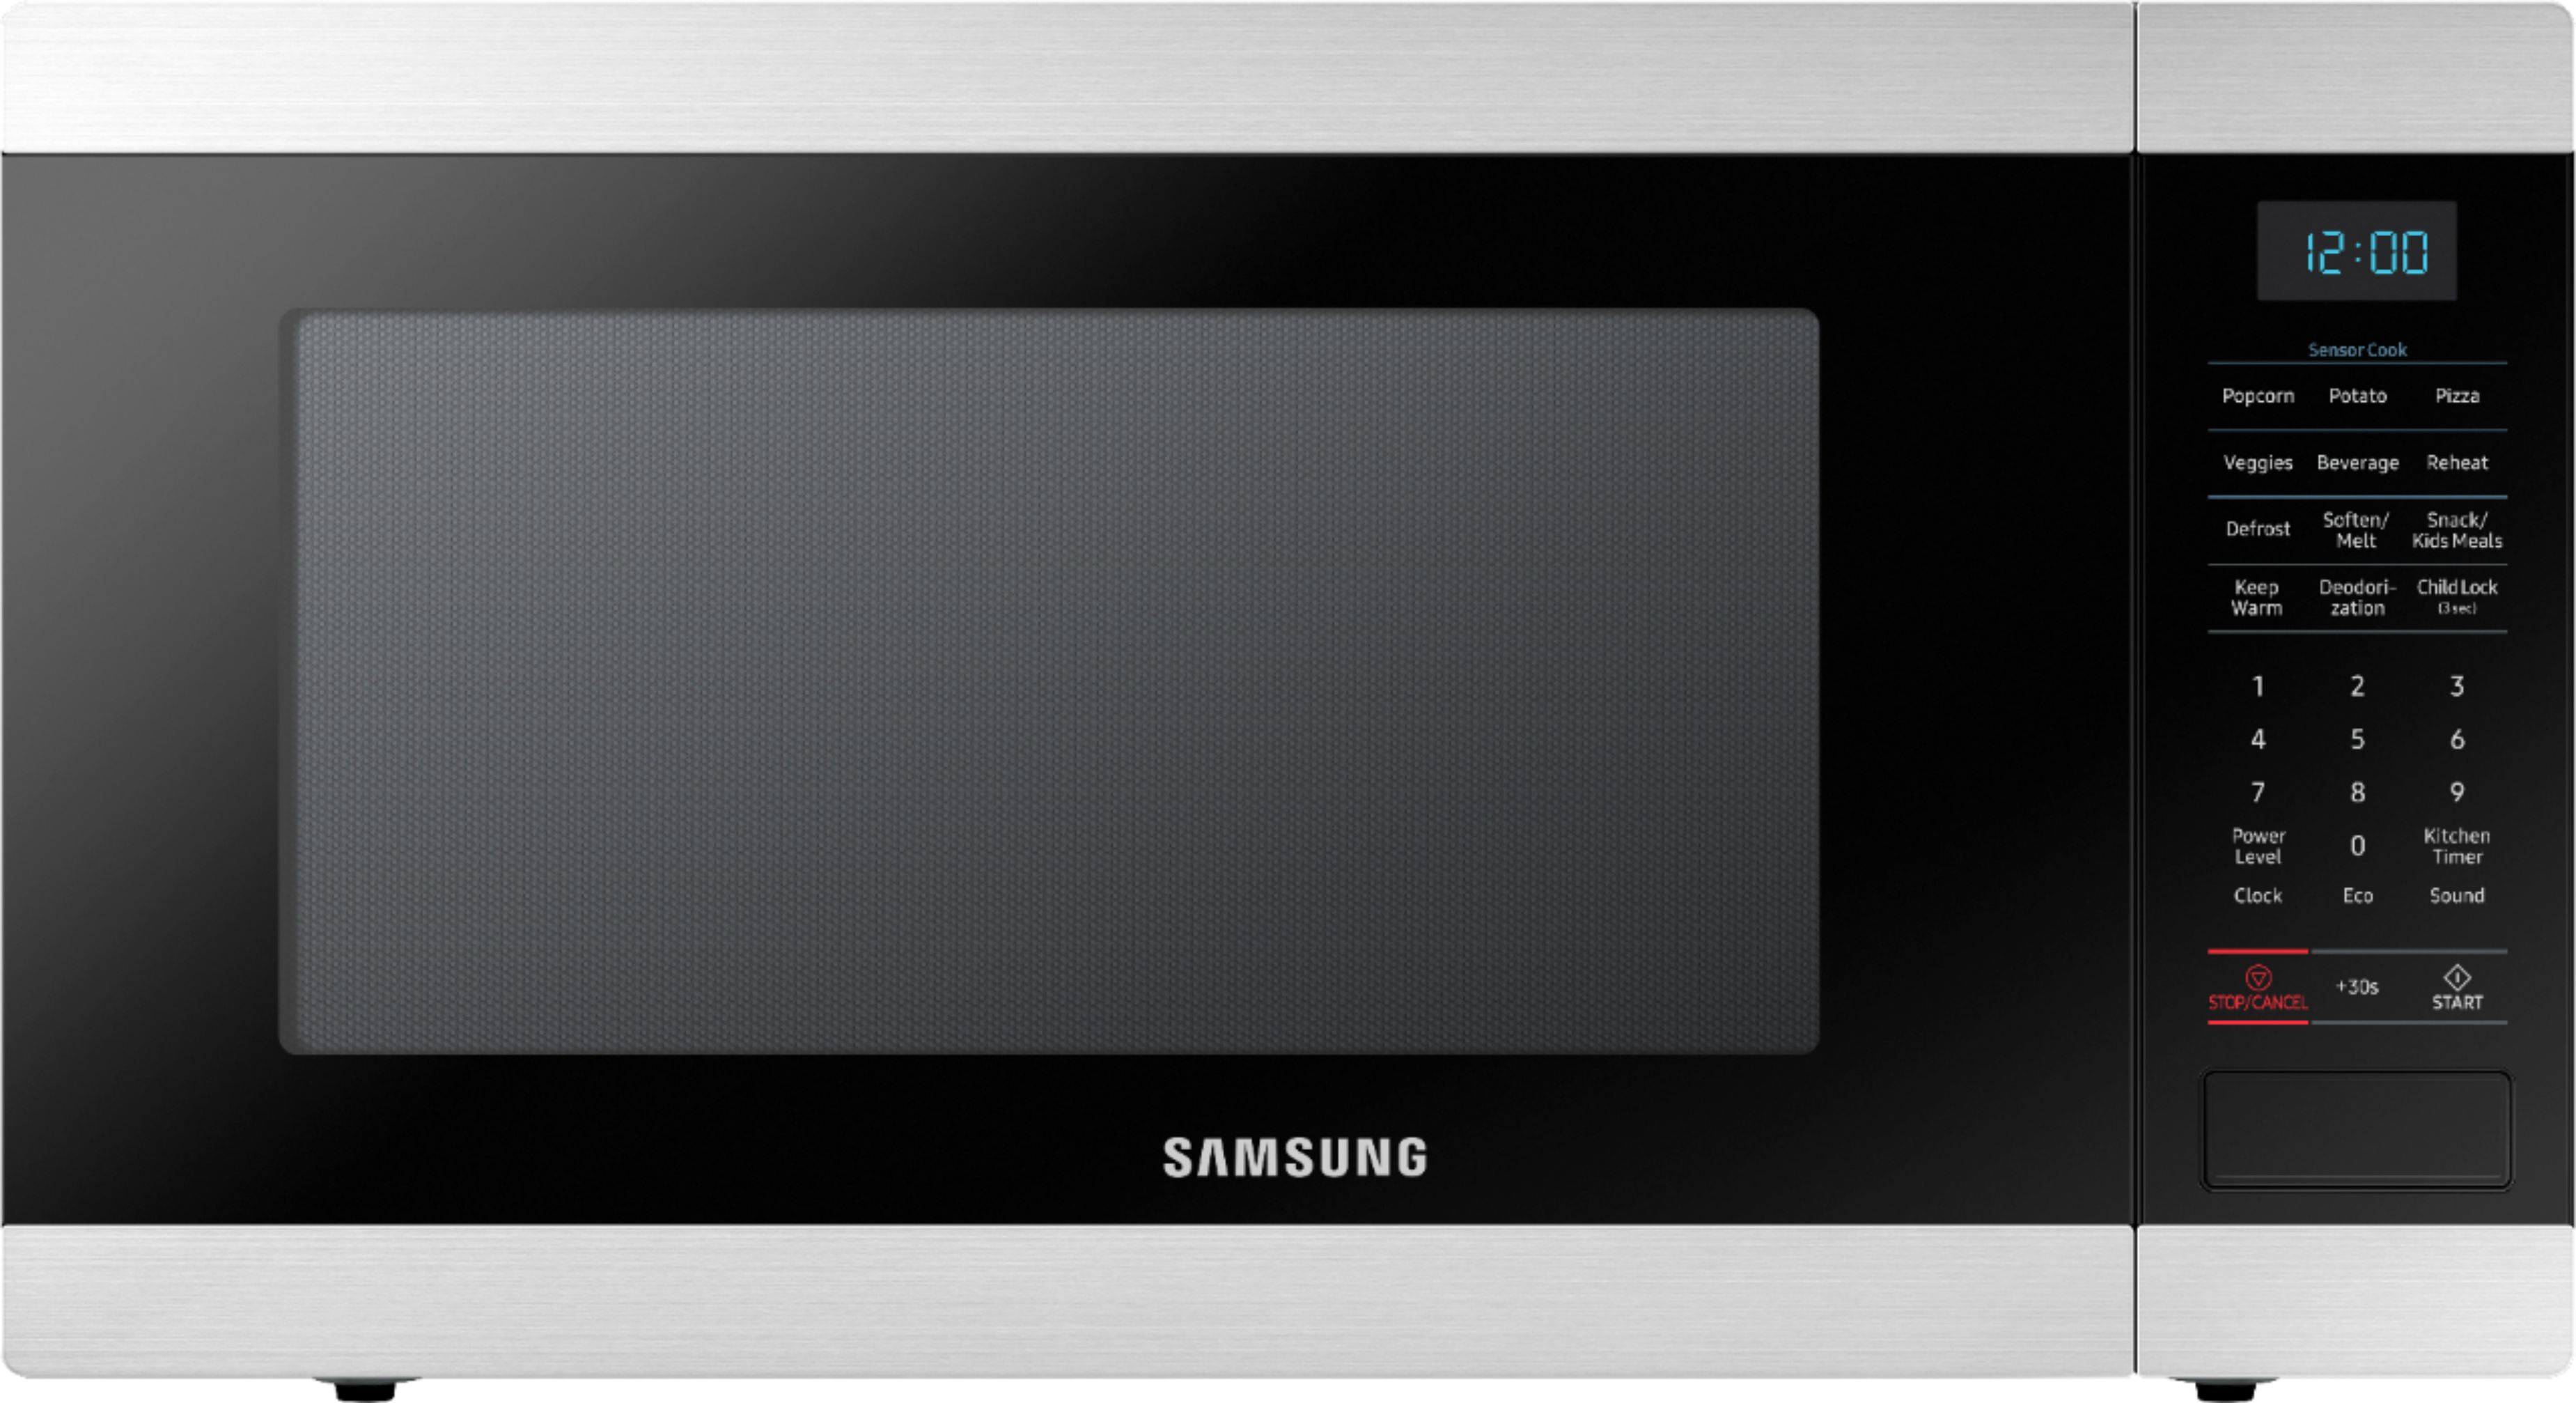 samsung 1 9 cu ft countertop microwave with sensor cook stainless steel